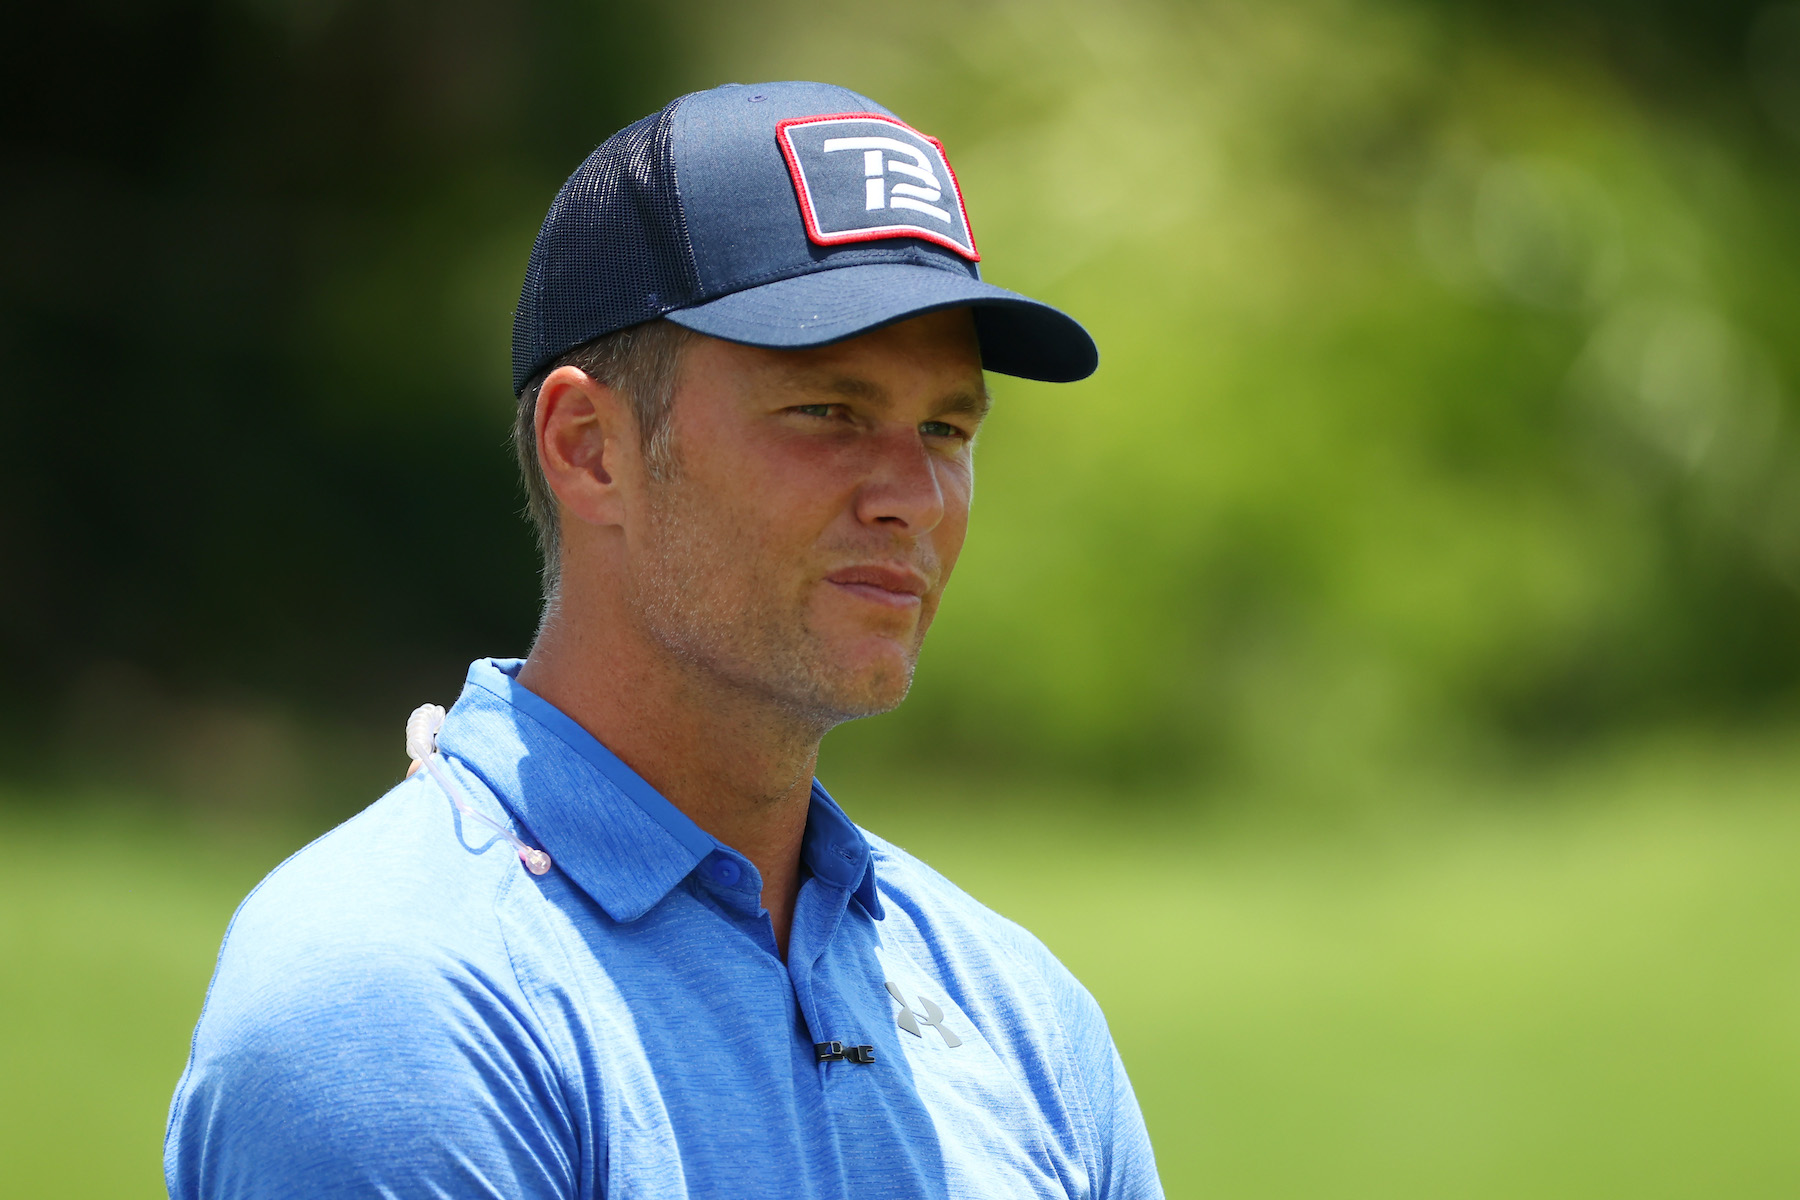 NFL player Tom Brady of the Tampa Bay Buccaneers